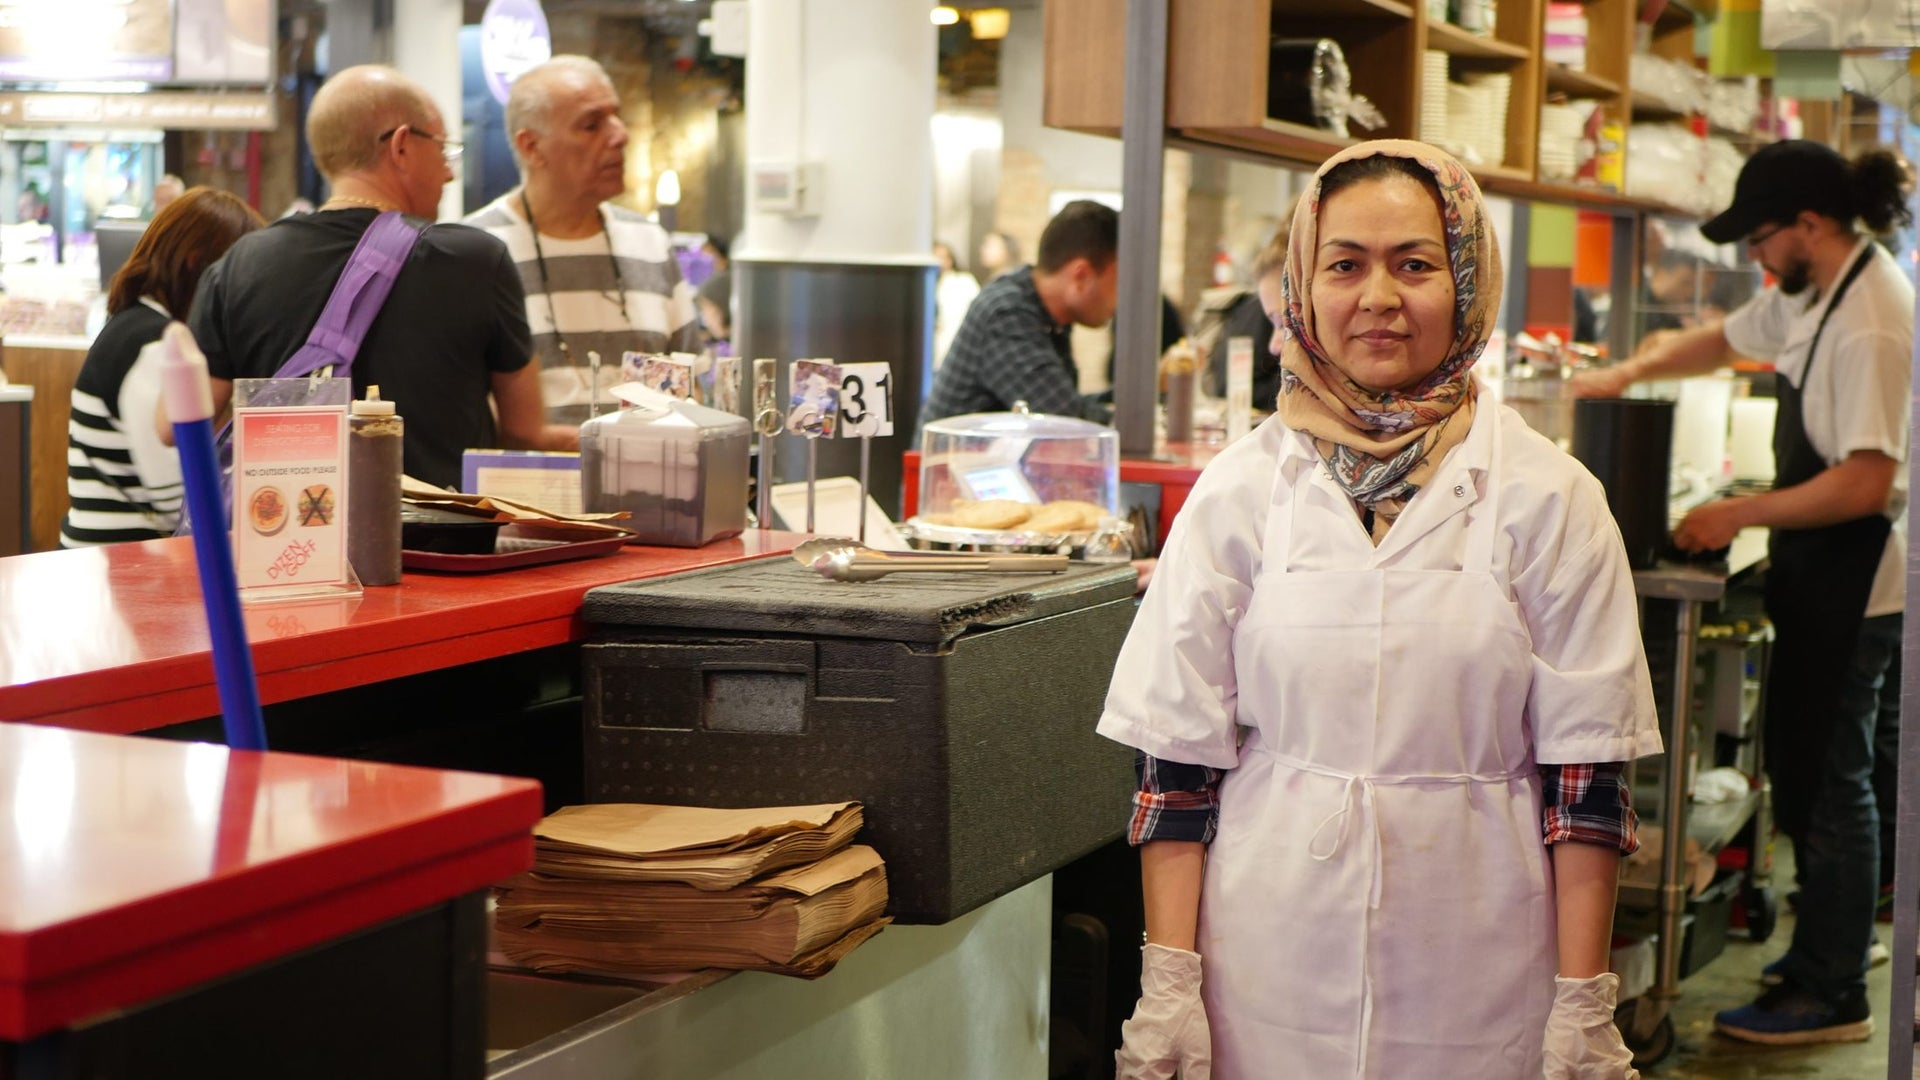 Naseema Bakhshi, an Afghani refugee and graduate from the Emma's Torch program, working at the Dizengoff kitchen in Chelsea Market, New York.